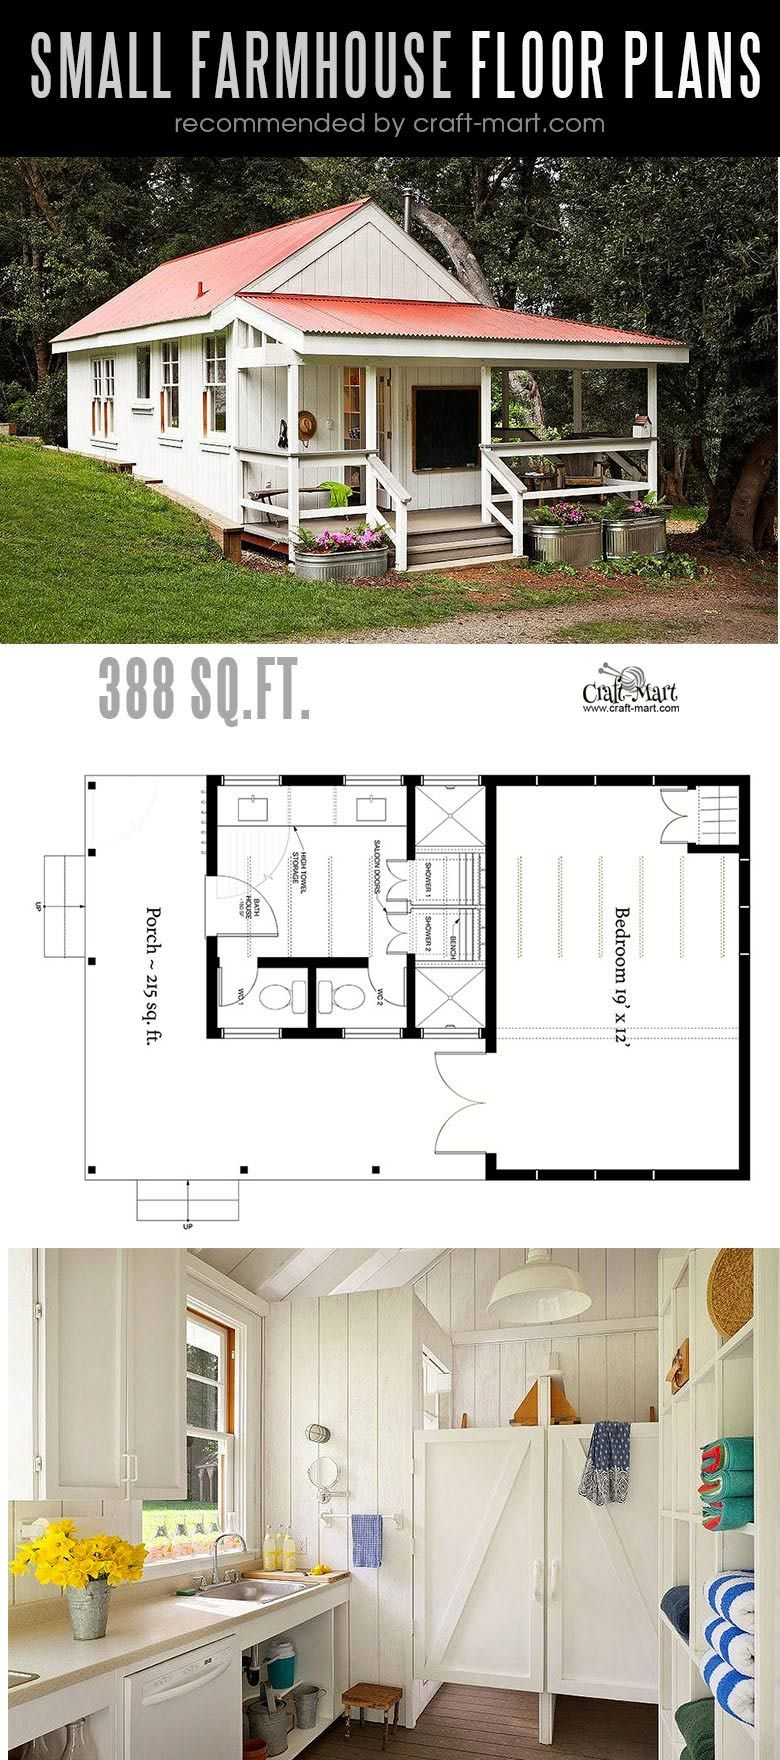 Designing and building a Farmhouse Style Summer